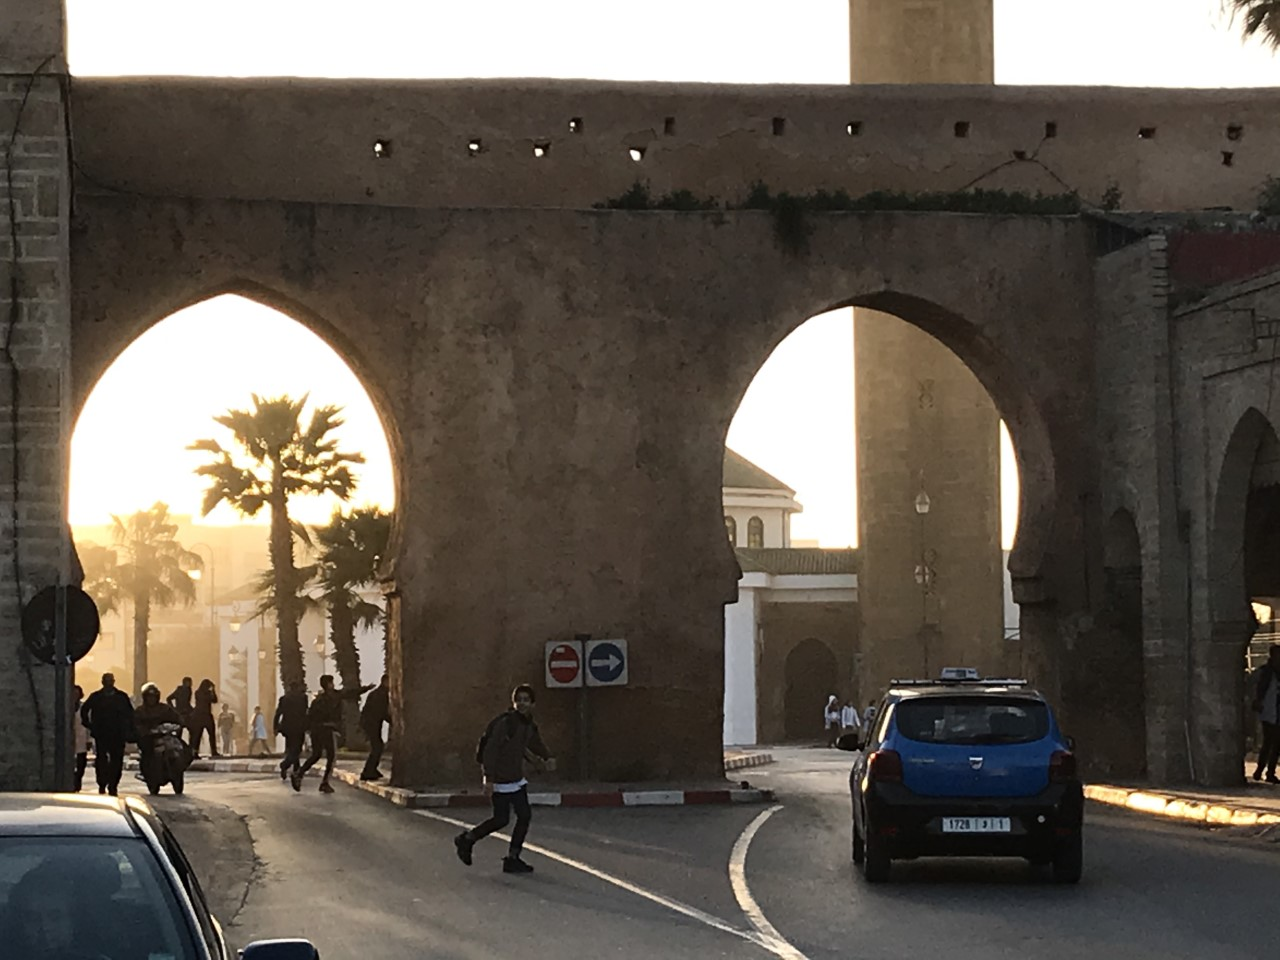 Sunlight filters through one of the main gates in the Medina of Rabat, as children play and locals mingle. Photo taken on Monday, Feb. 24, 2020 in Rabat, Morocco.